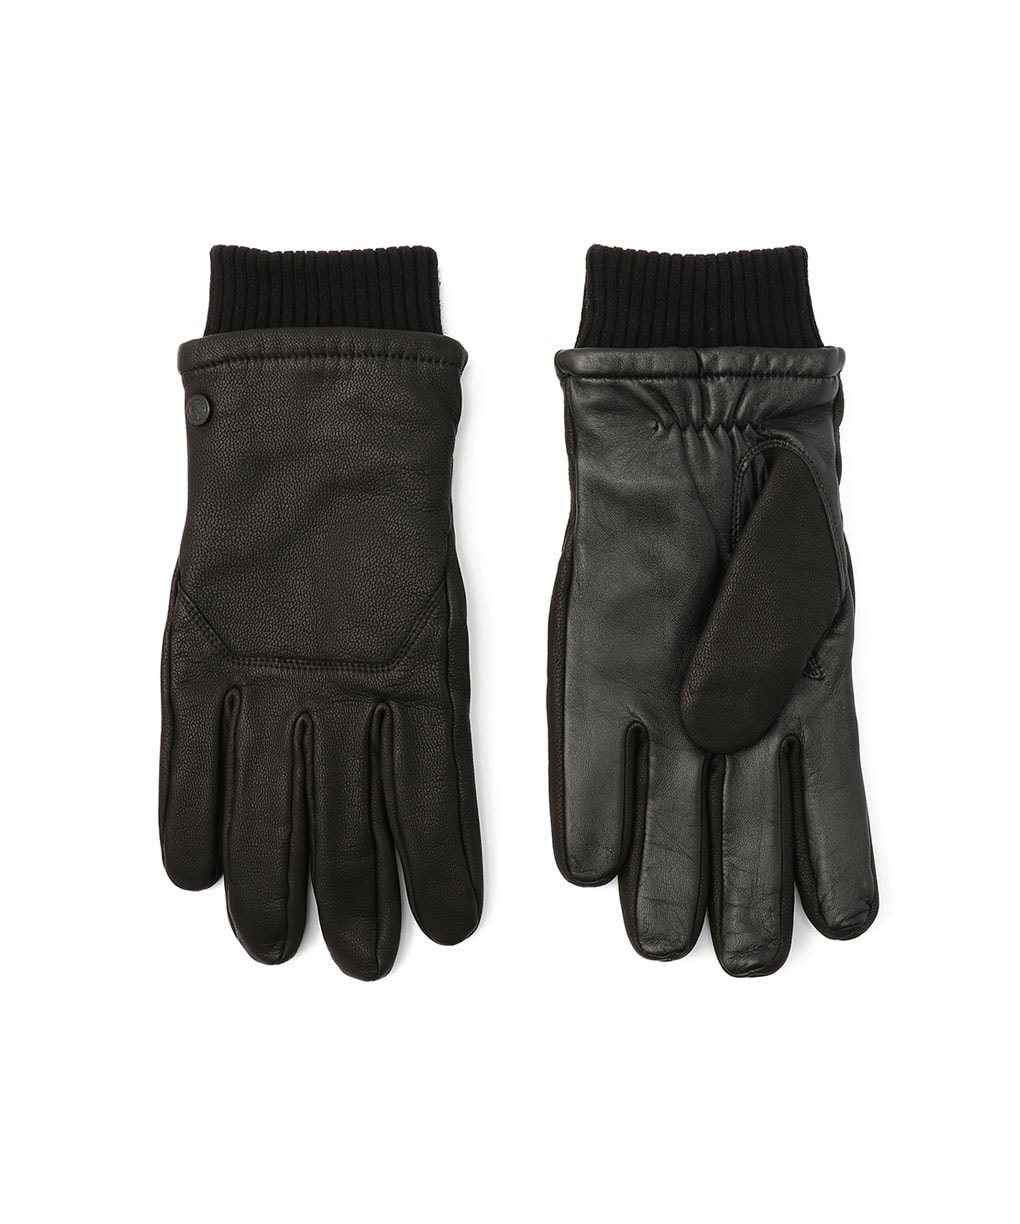 WORKMAN GLOVE